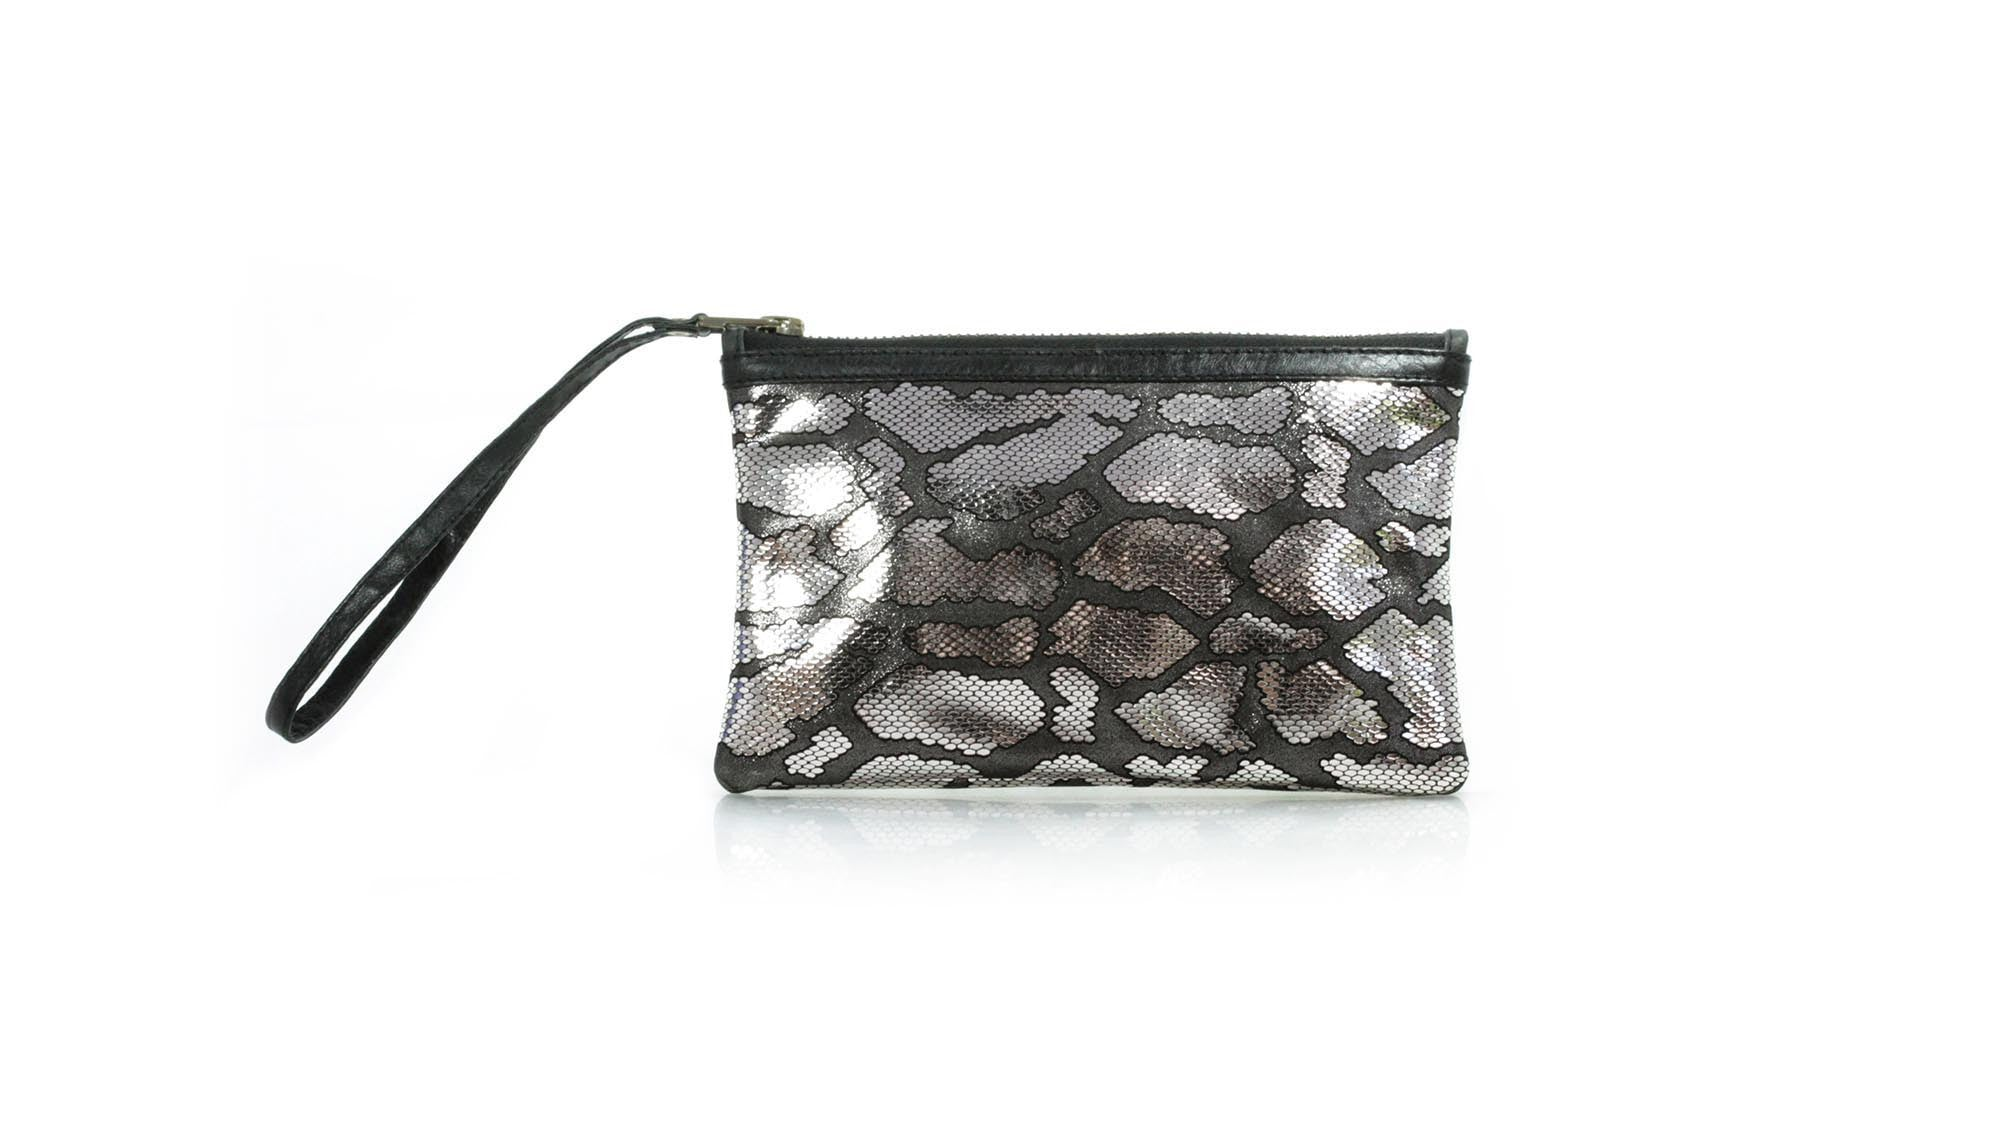 Leather-shoes-Zipper clutch - Silver Embossed Snake leather-Zipper Clutch-NILUH DJELANTIK-NILUH DJELANTIK